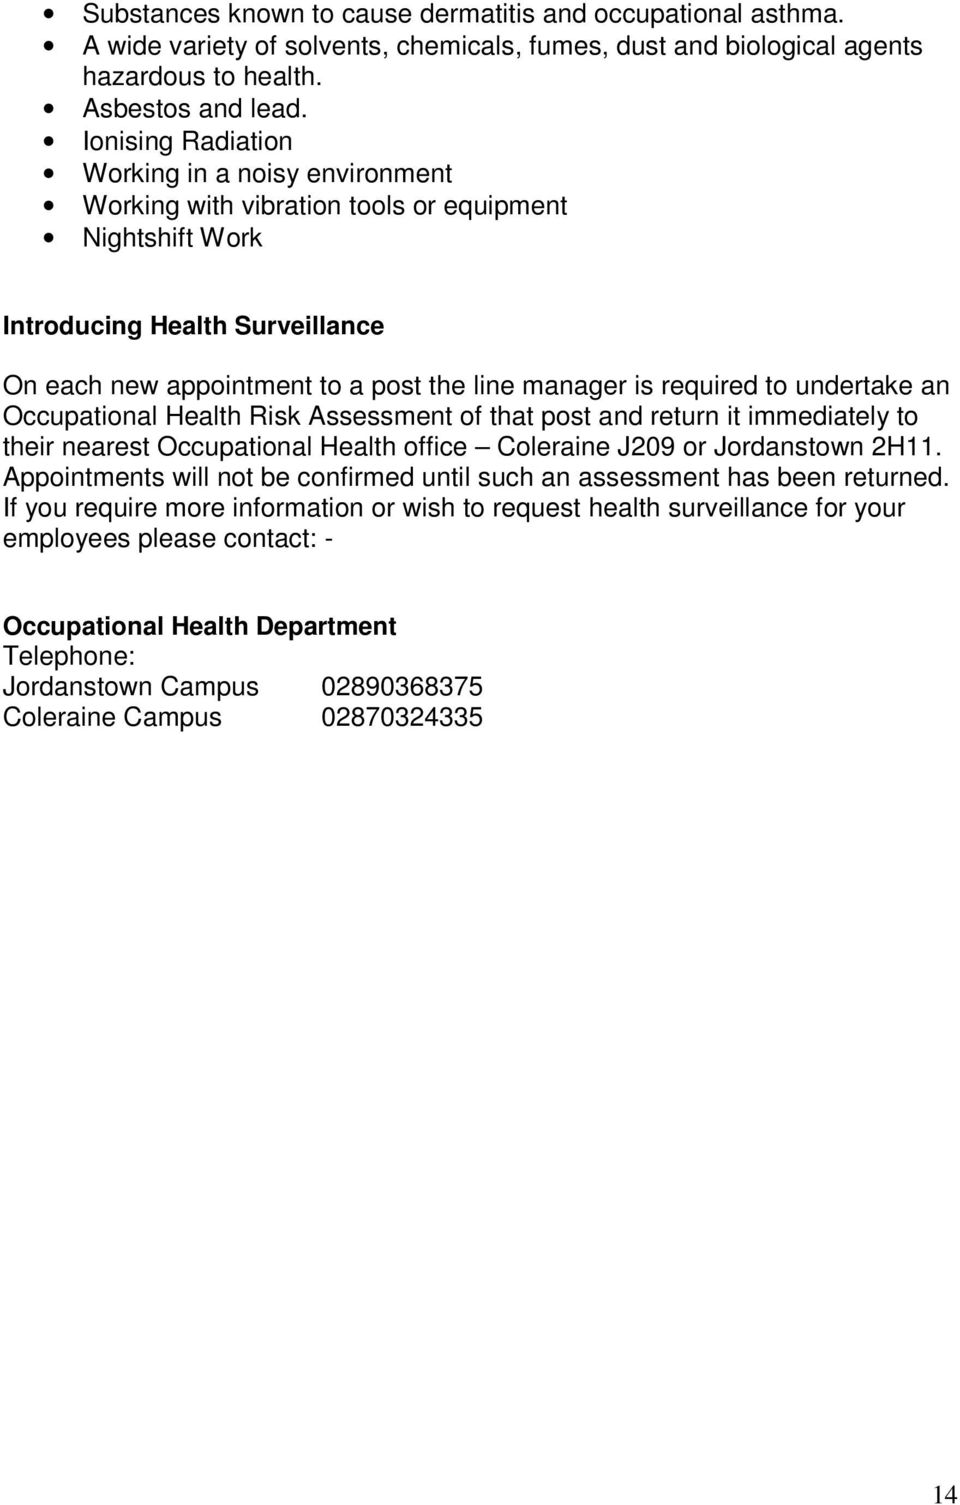 required to undertake an Occupational Health Risk Assessment of that post and return it immediately to their nearest Occupational Health office Coleraine J209 or Jordanstown 2H11.